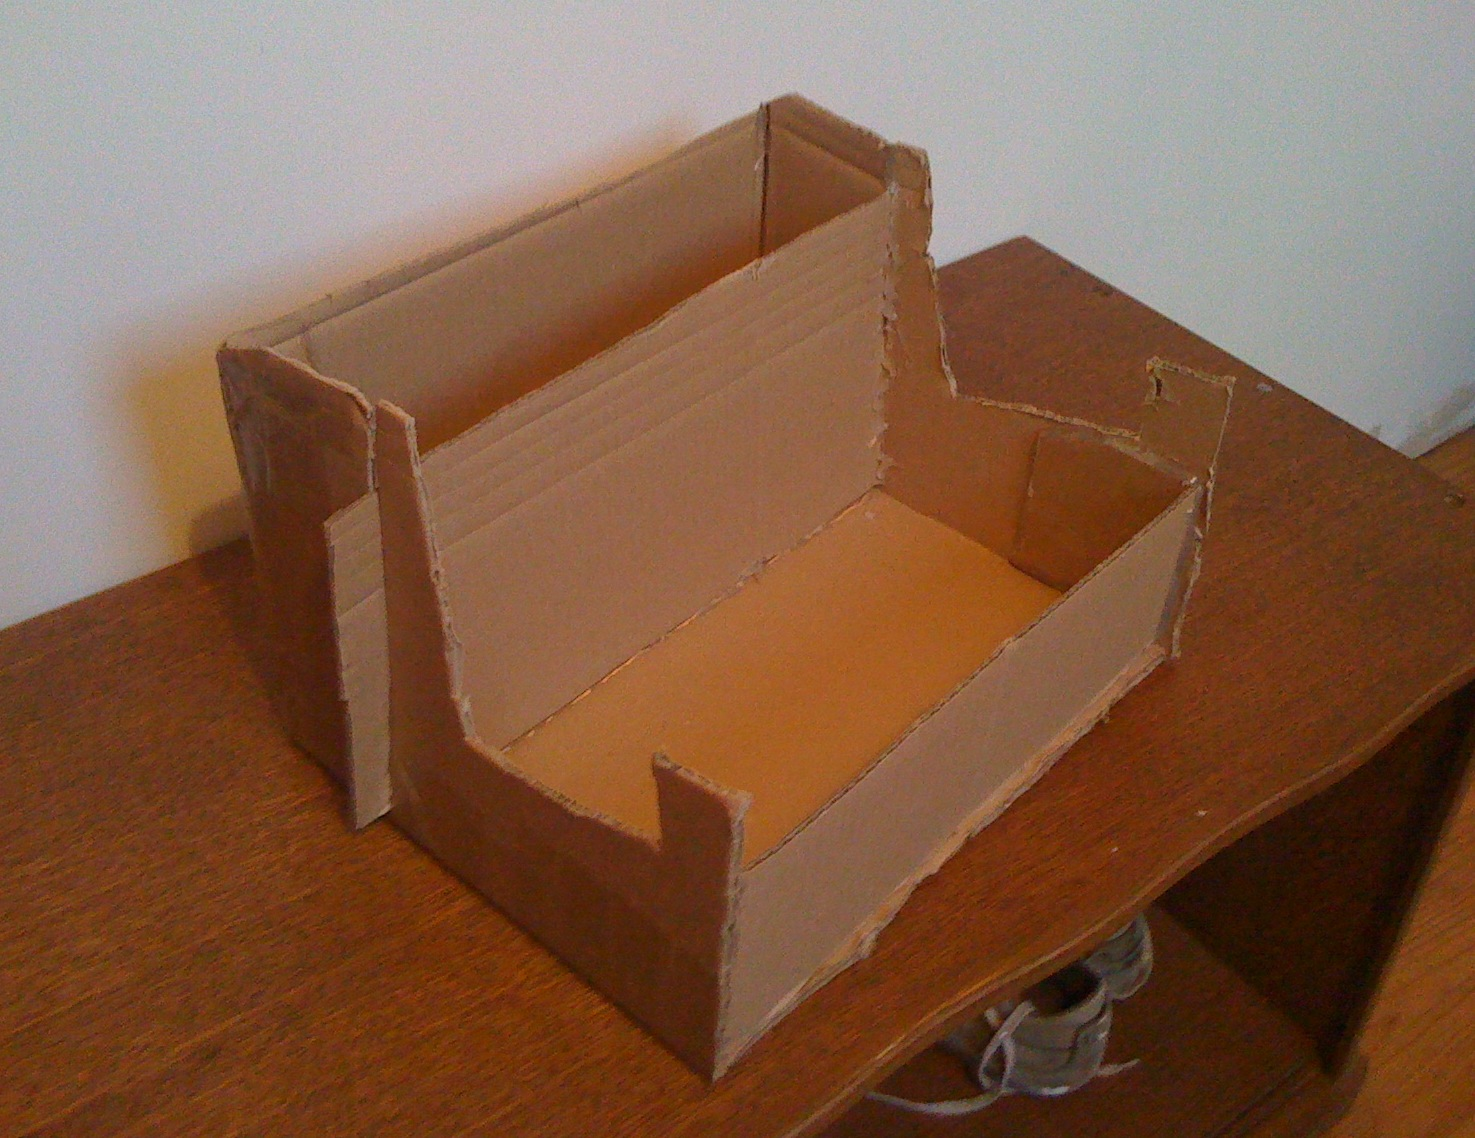 Guitar stand out of a cardboard box